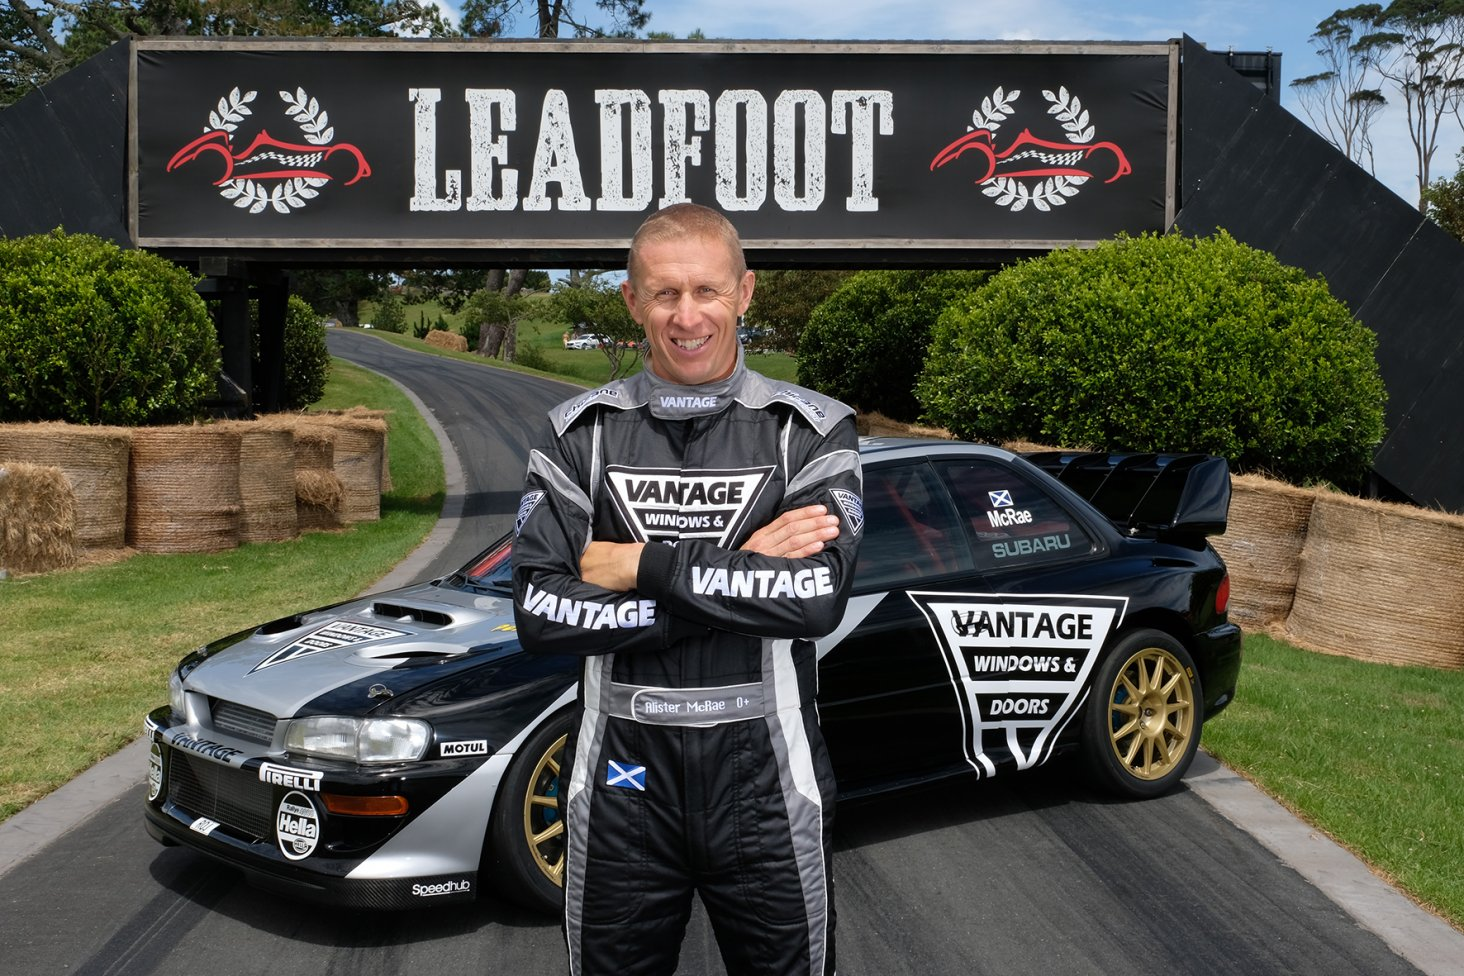 Scottish rally star Alister McRae will be defending his title this year at the Leadfoot Festival.